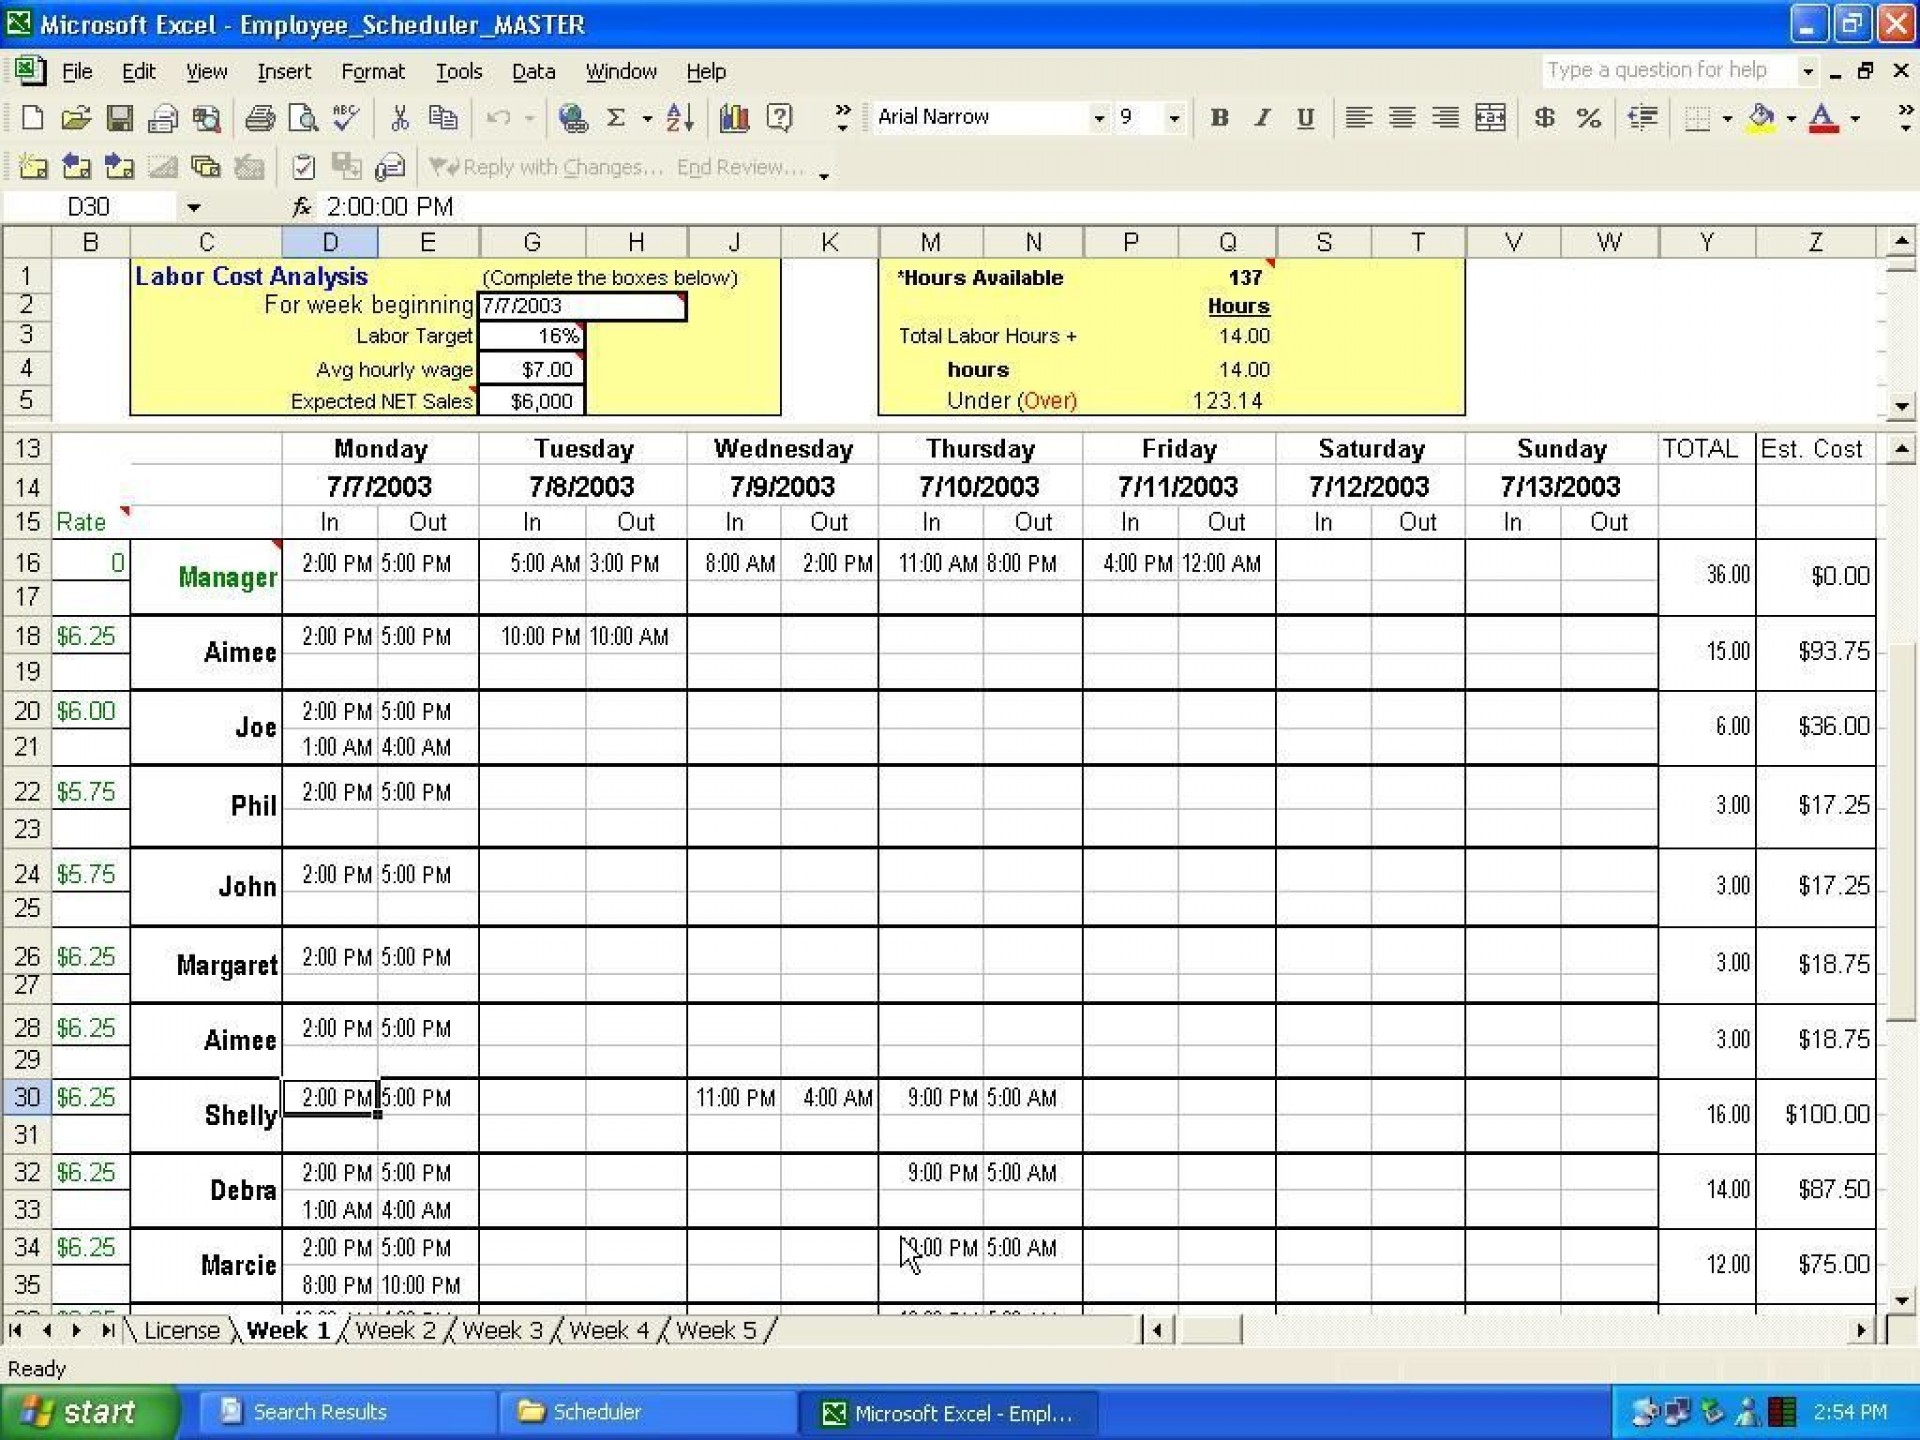 001 Marvelou Microsoft Excel Schedule Template Sample  Construction Calendar 2020 Free1920